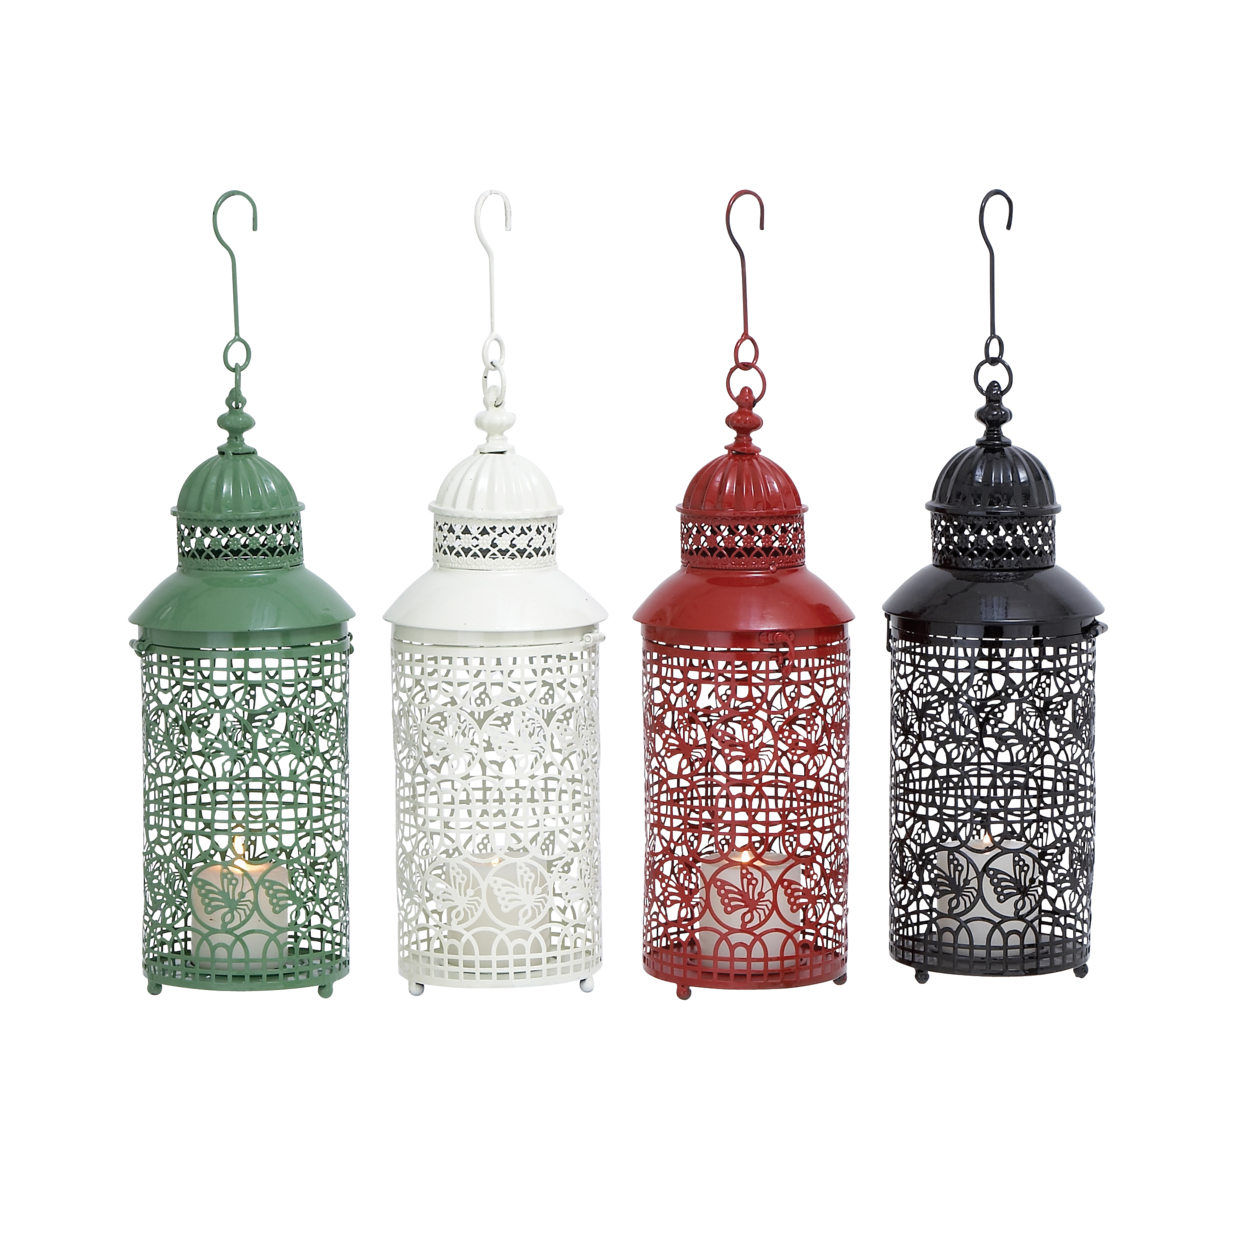 Metal Candle Holder With Four Assorted Colors 58995287c98fc433fa2338b0